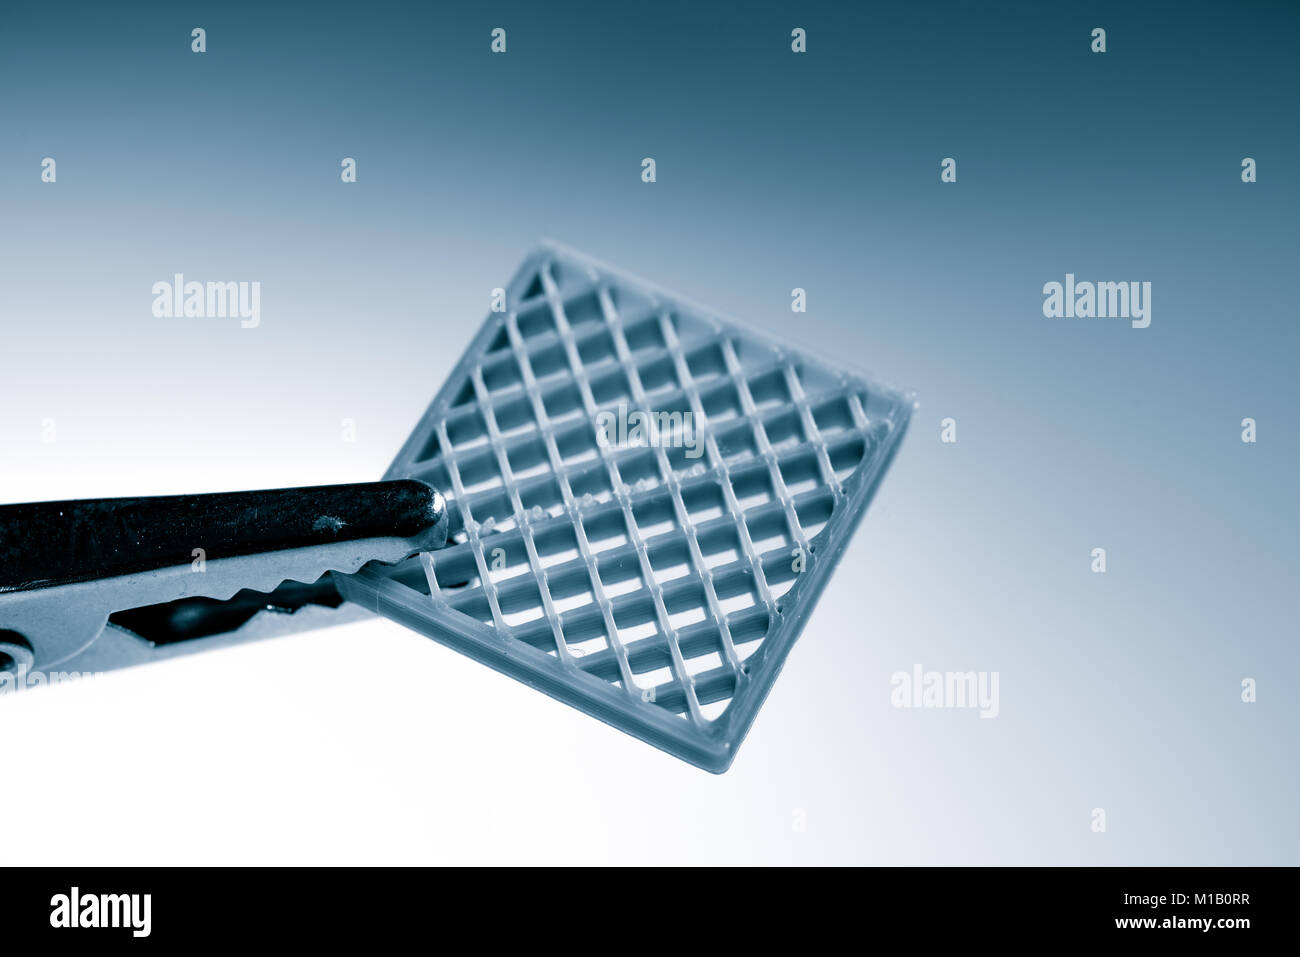 Sample metamaterial manufactured by 3dprinting - Stock Image